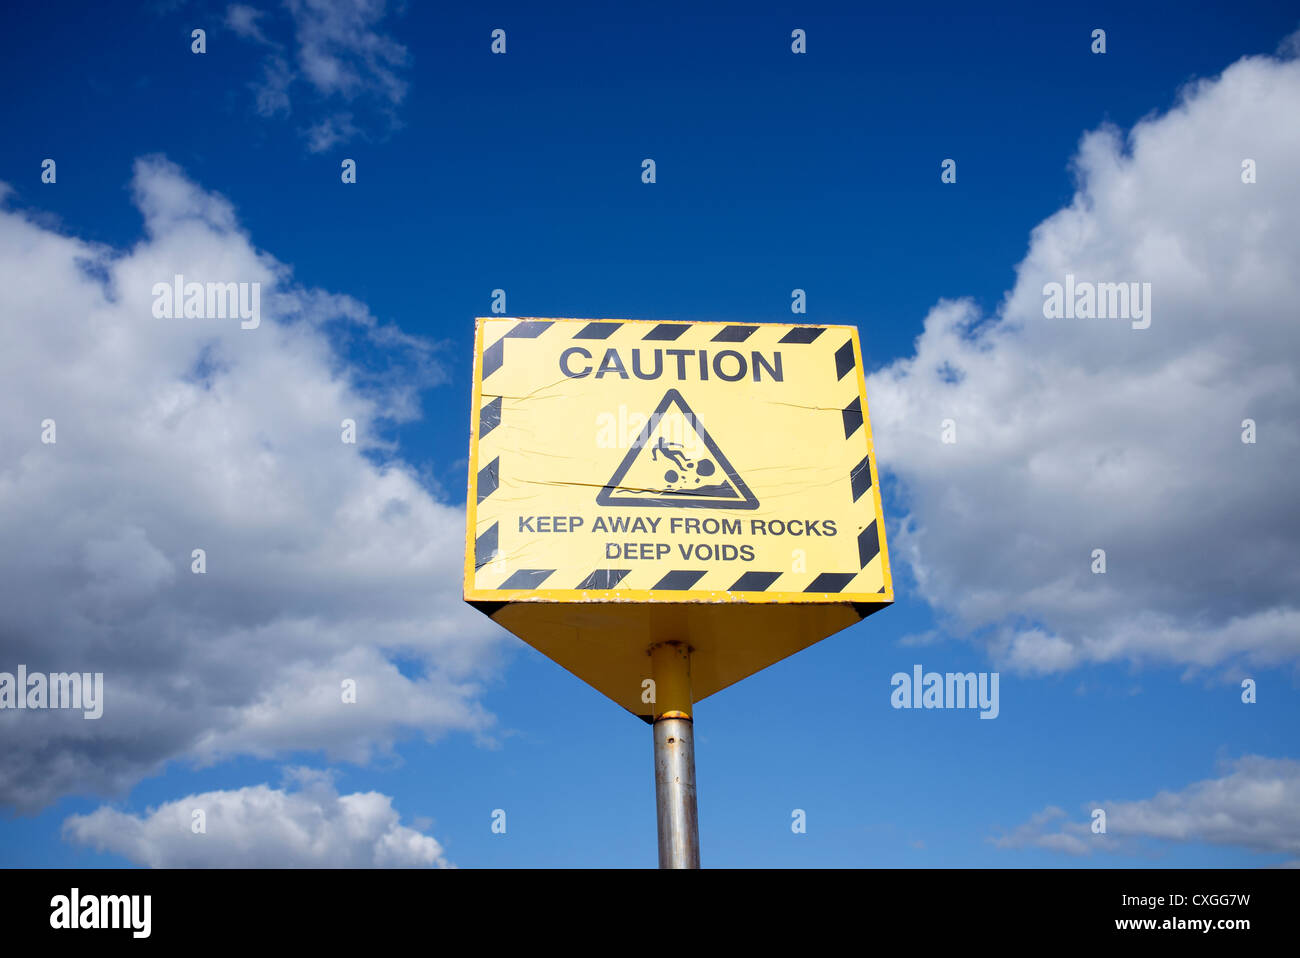 caution keep away from rocks sign - Stock Image